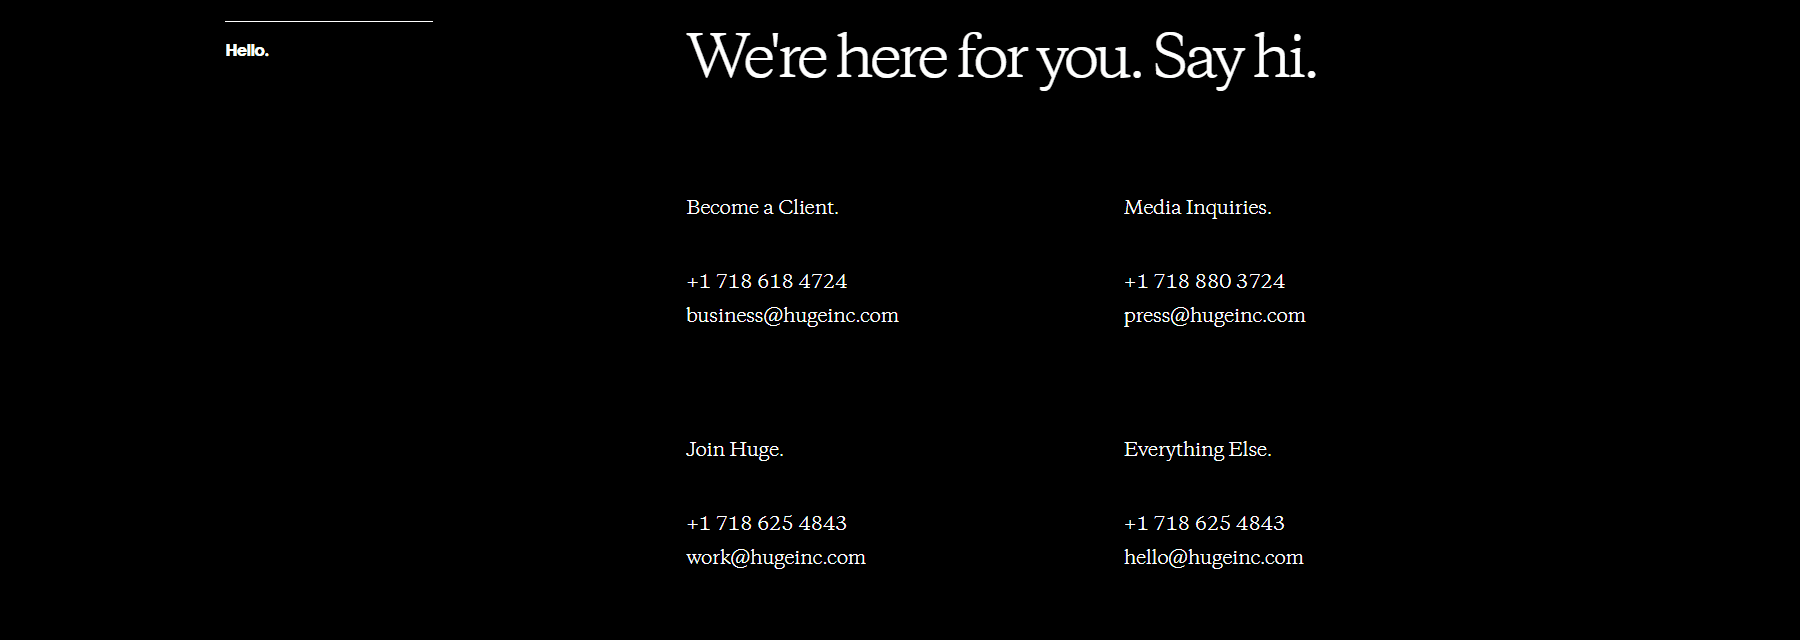 hugeinc second screen of the contact us page